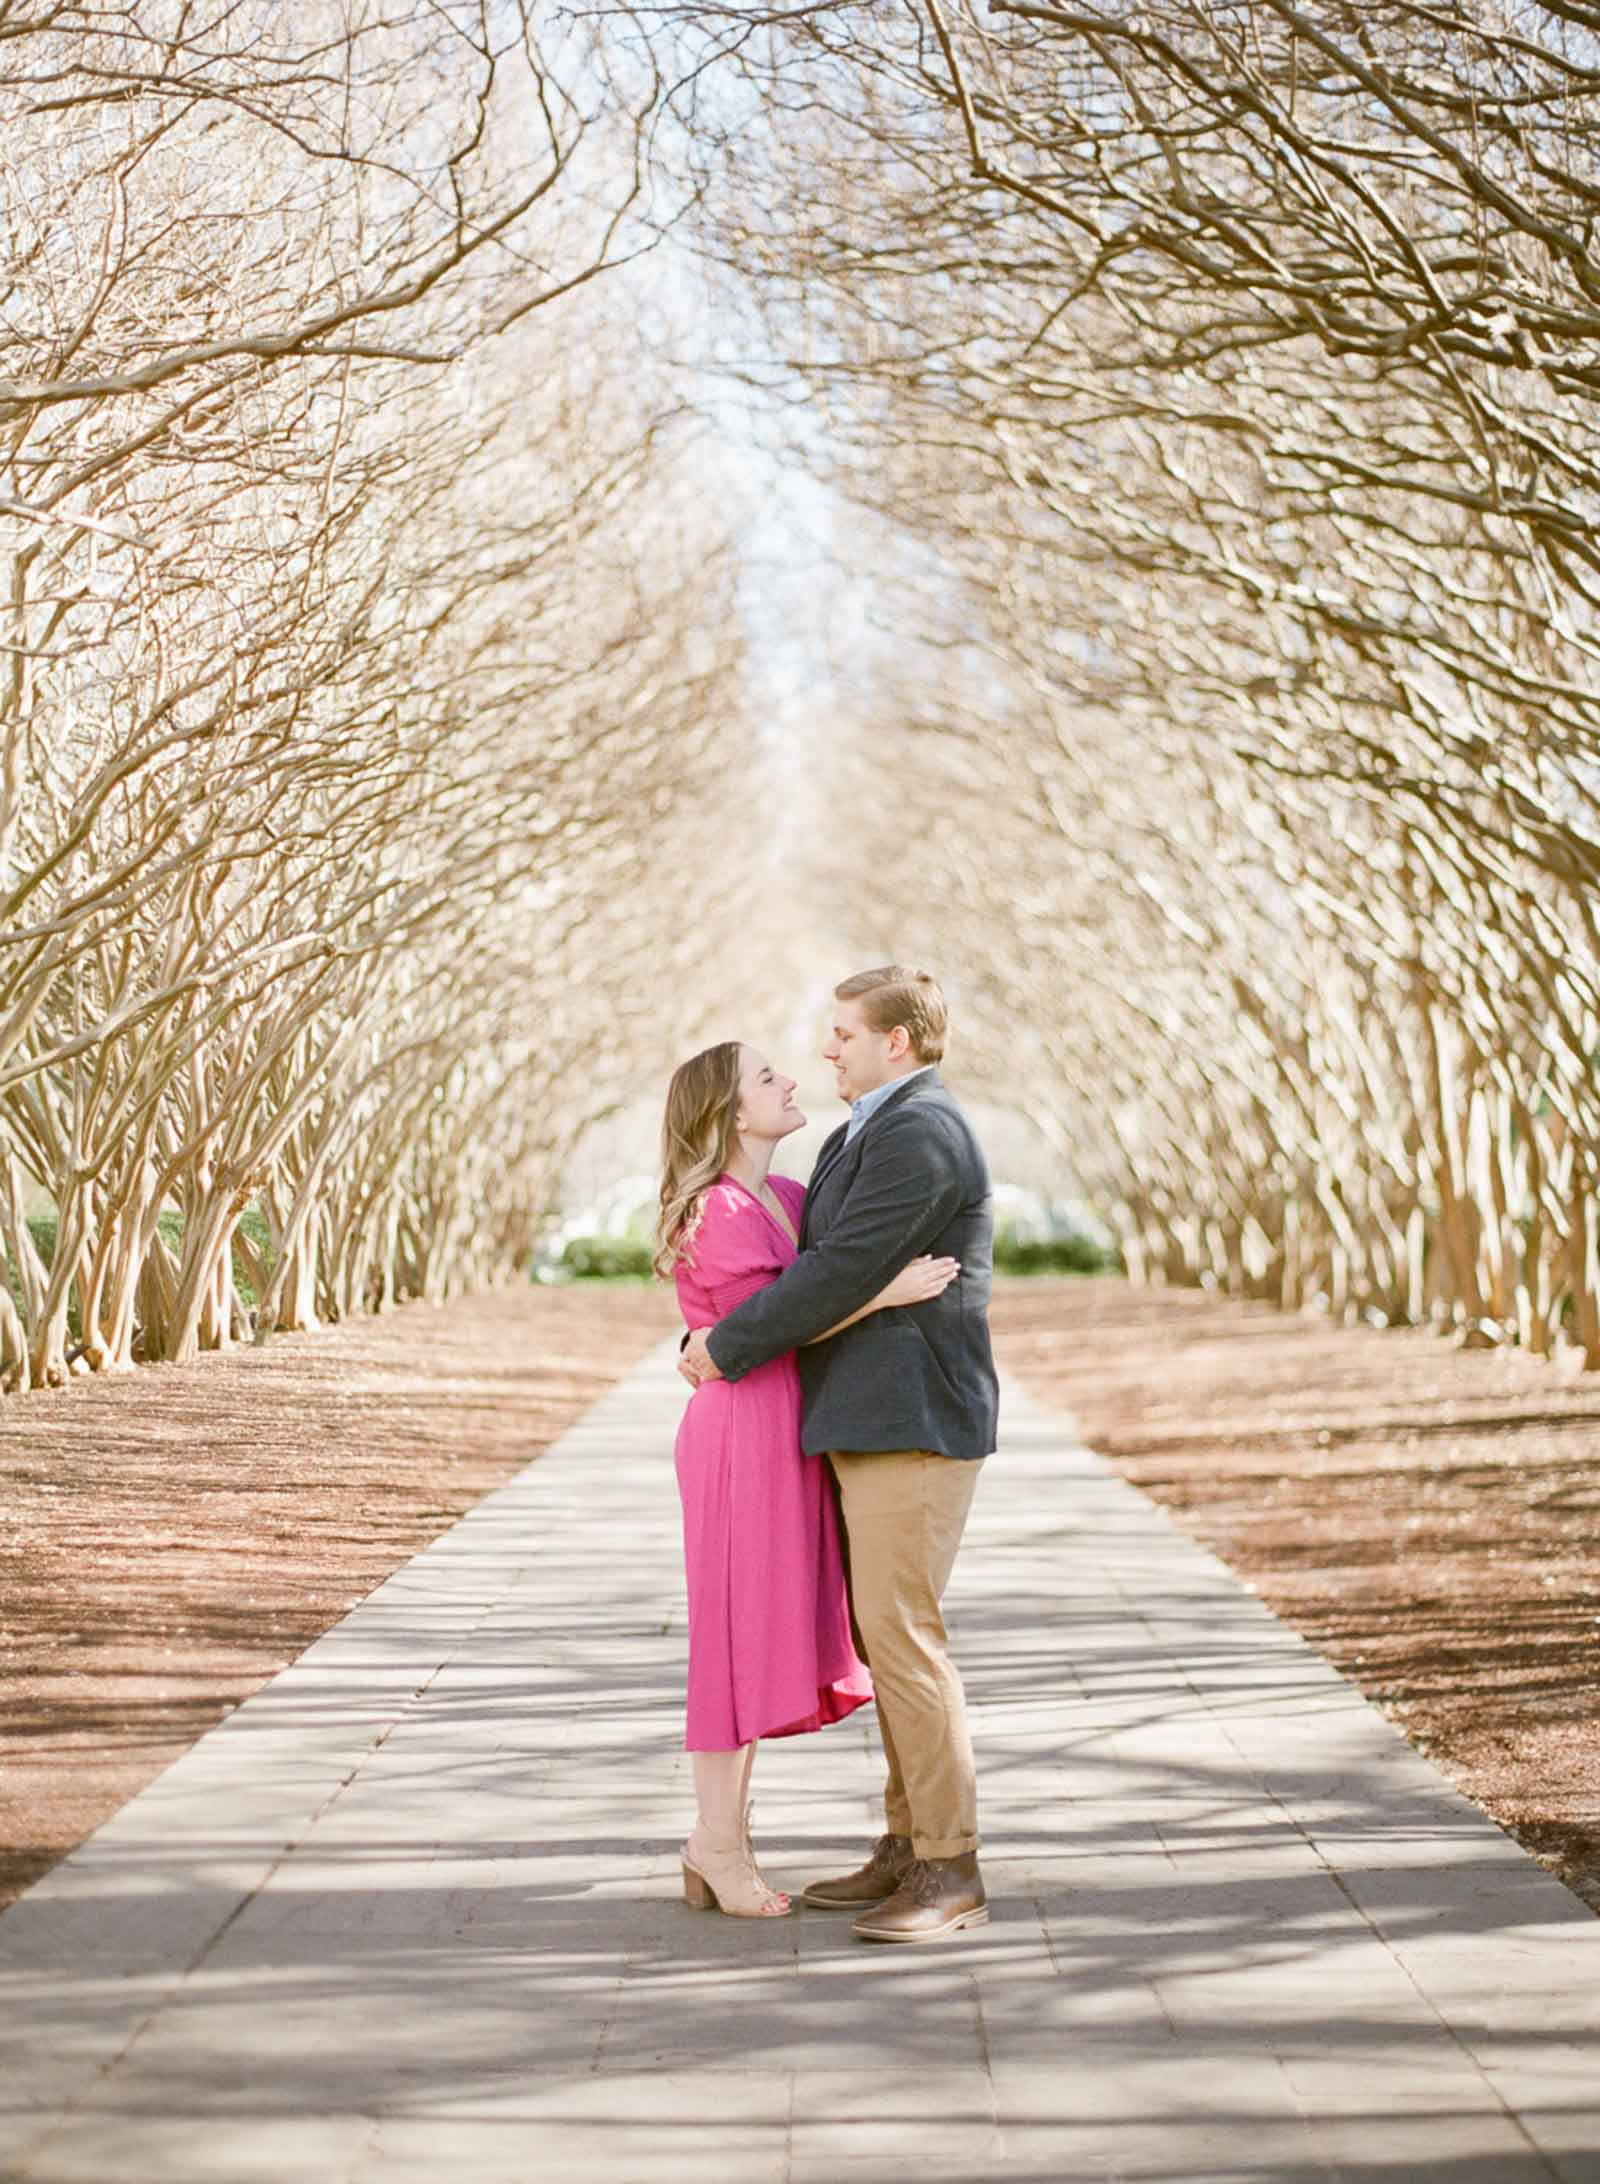 Dallas Arboretum Engagement-JenSymes-74.jpg